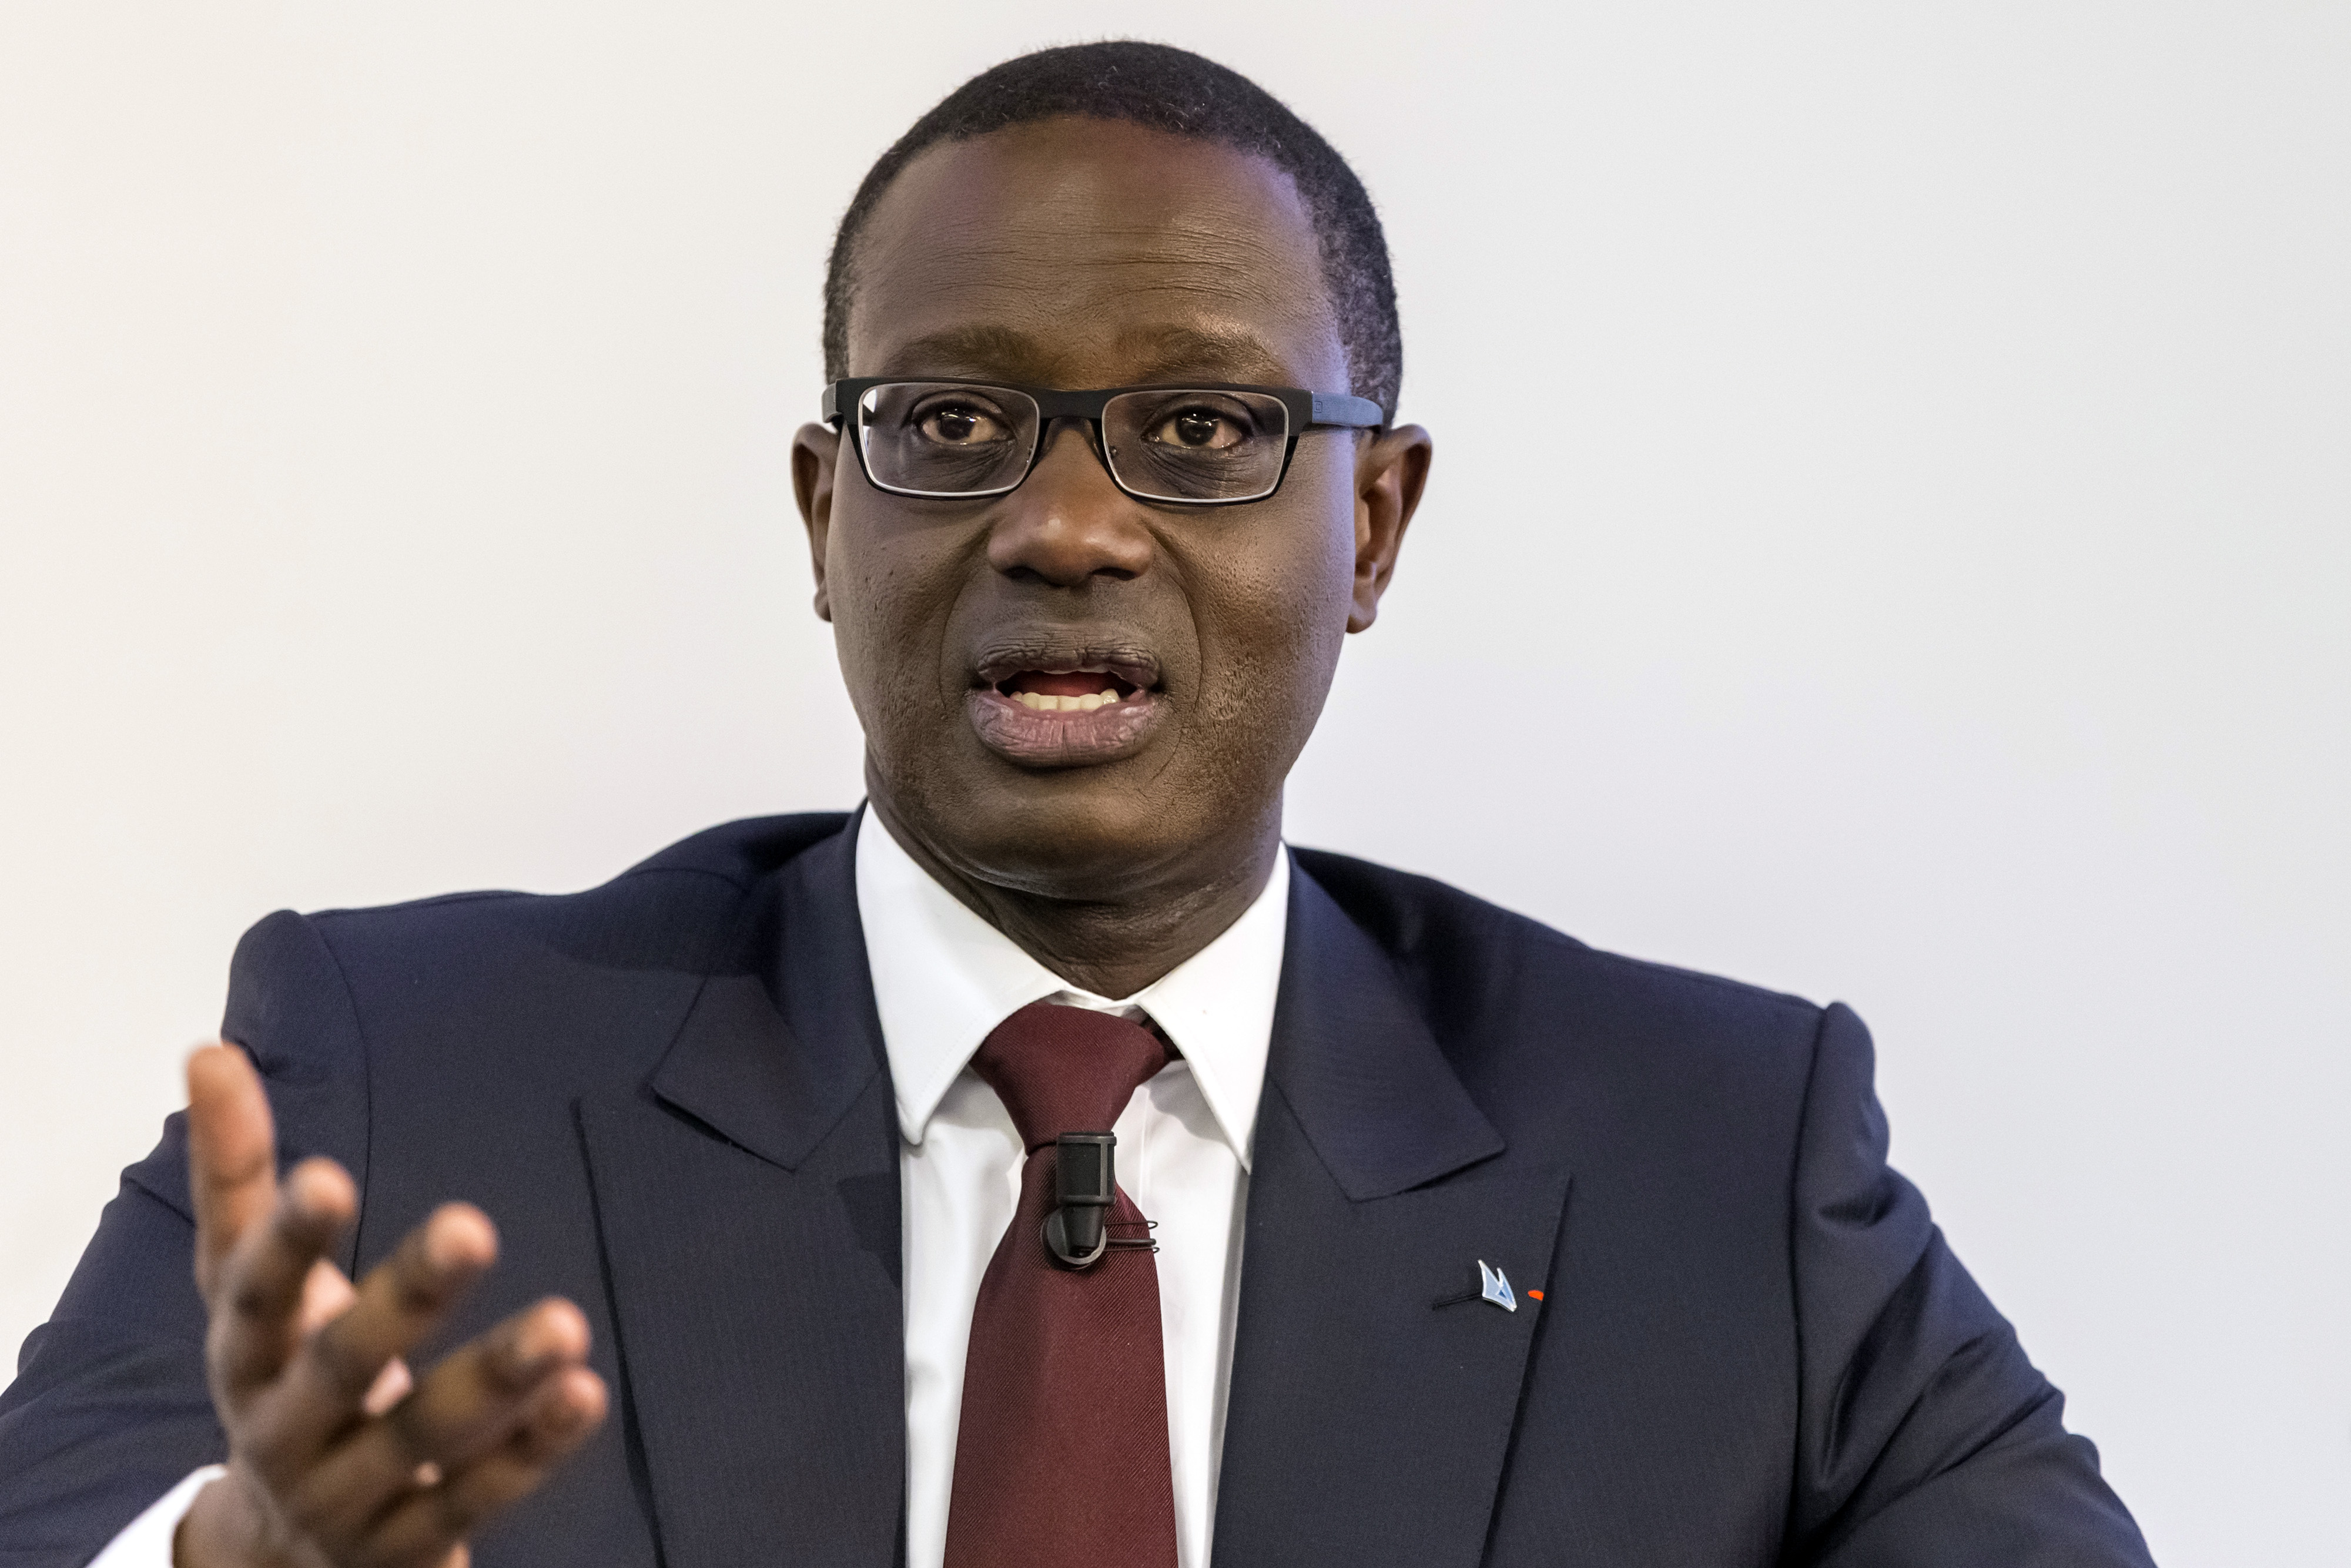 ZURICH: Credit Suisse Group AG Chief Executive Officer Tidjane Thiam Earnings News Conference & Interview